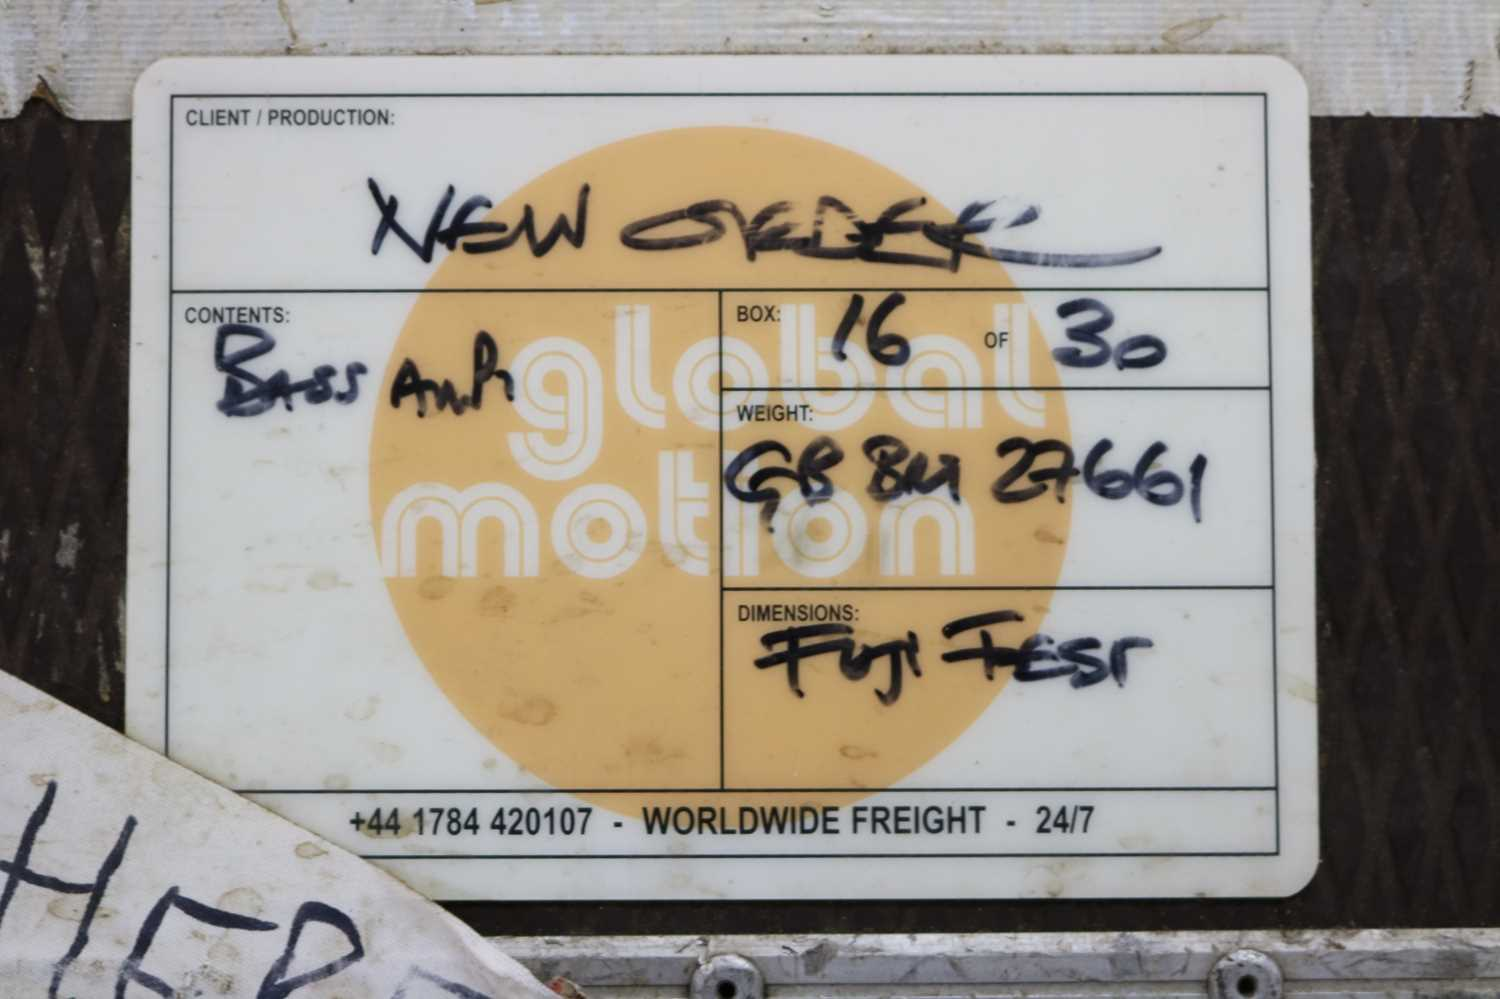 NEW ORDER BASS AMPS FLIGHT CASE - Image 3 of 3